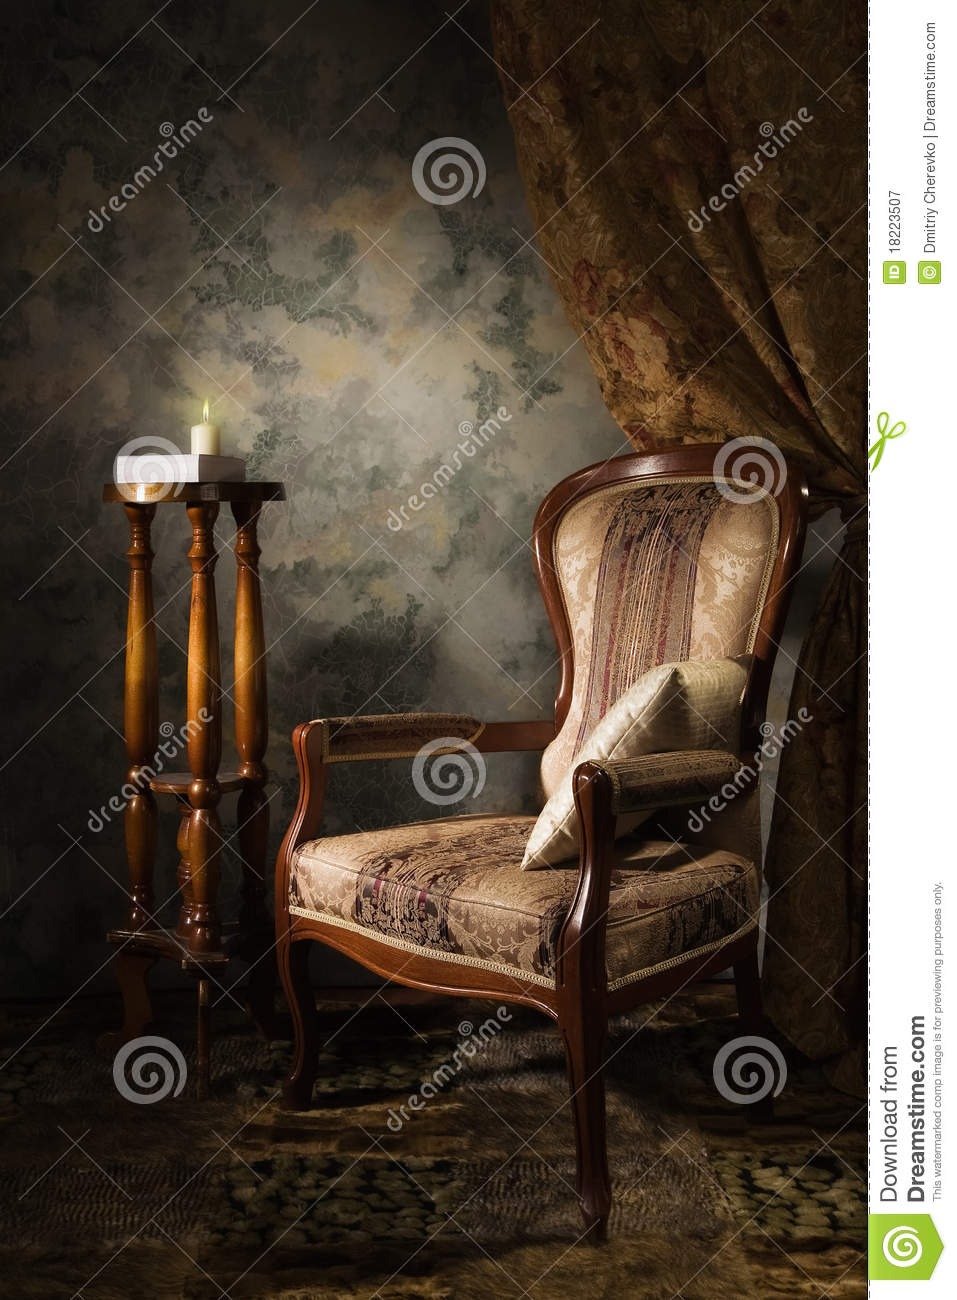 Luxurious vintage interior with armchair stock image Vintage interior